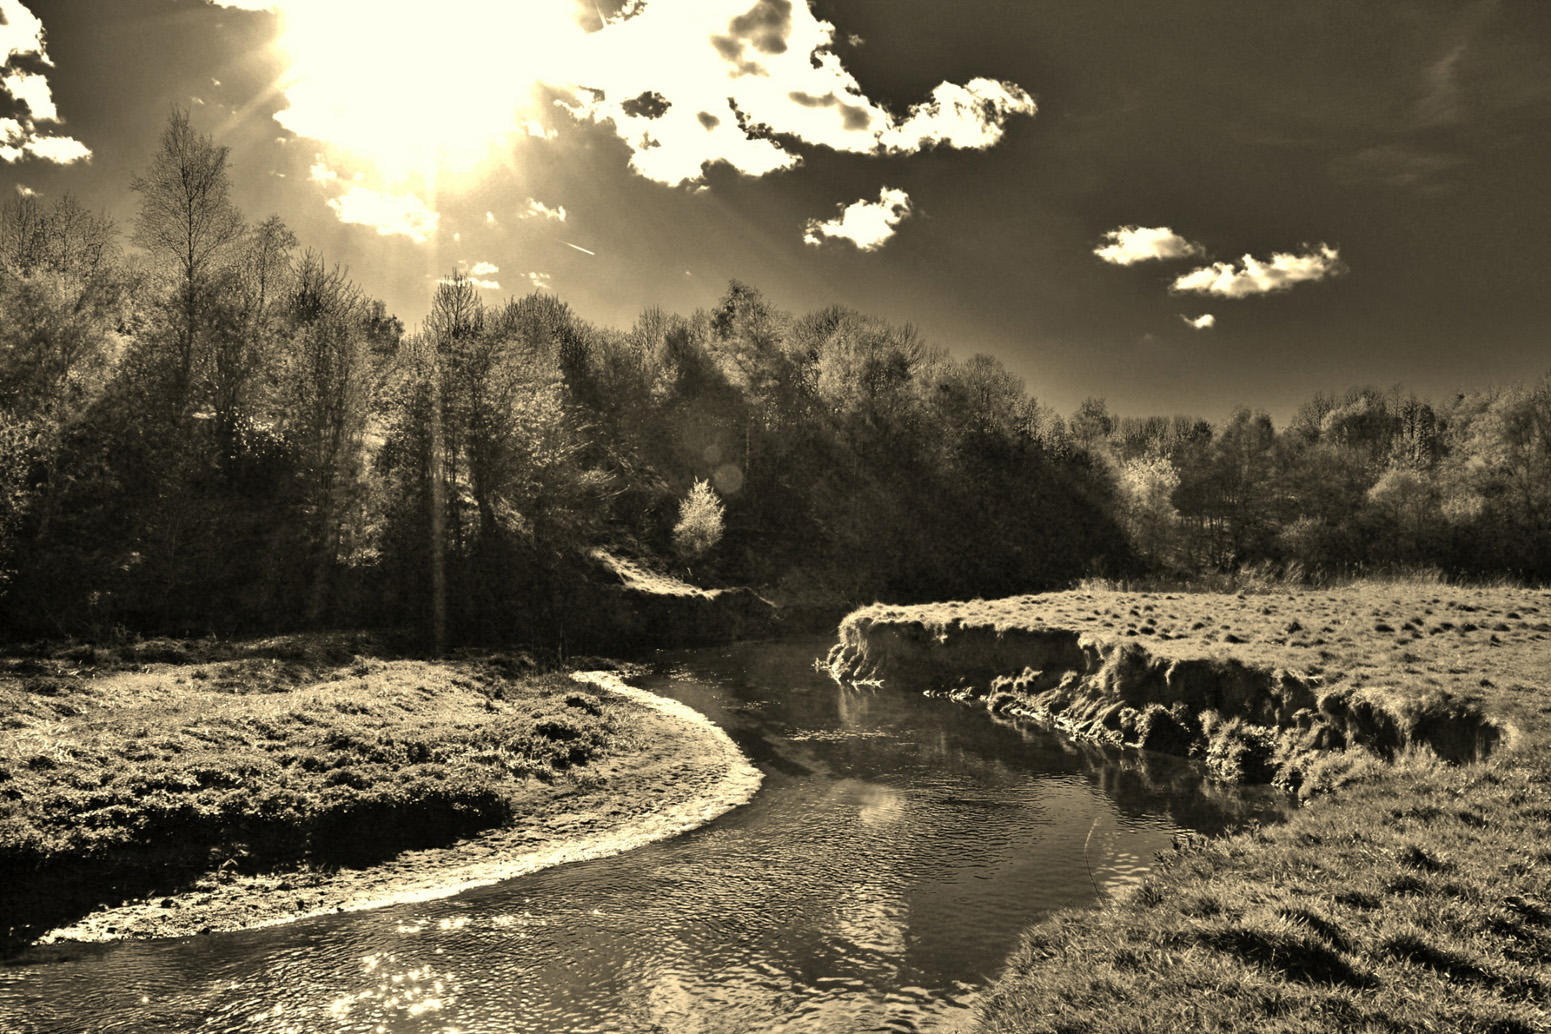 Sunshine on the Wince Brook in sepia